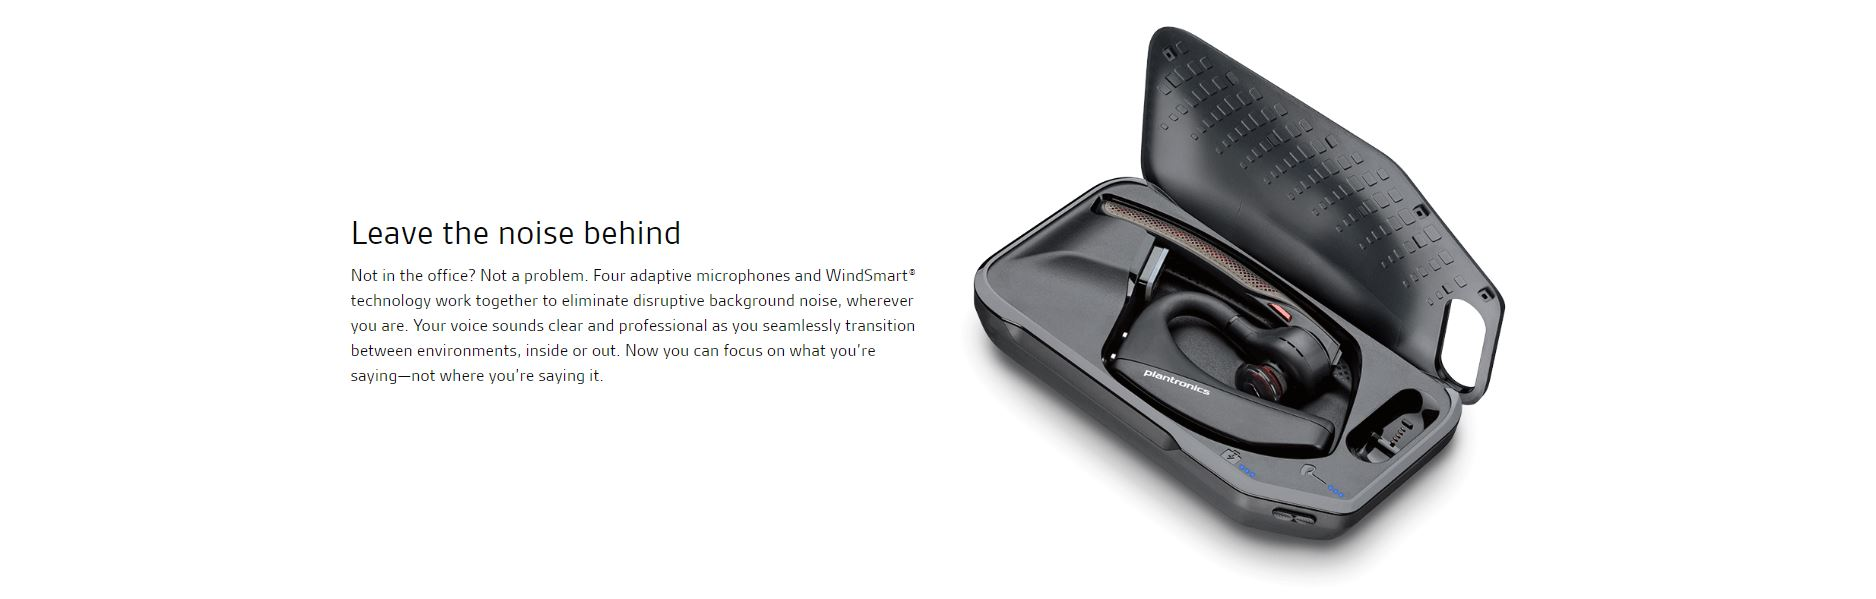 Plantronics VOYAGER 5200 UC Advanced NC Bluetooth Headsets System (BT600  USB dongle, Charging Case) (P/N: 206110-101)